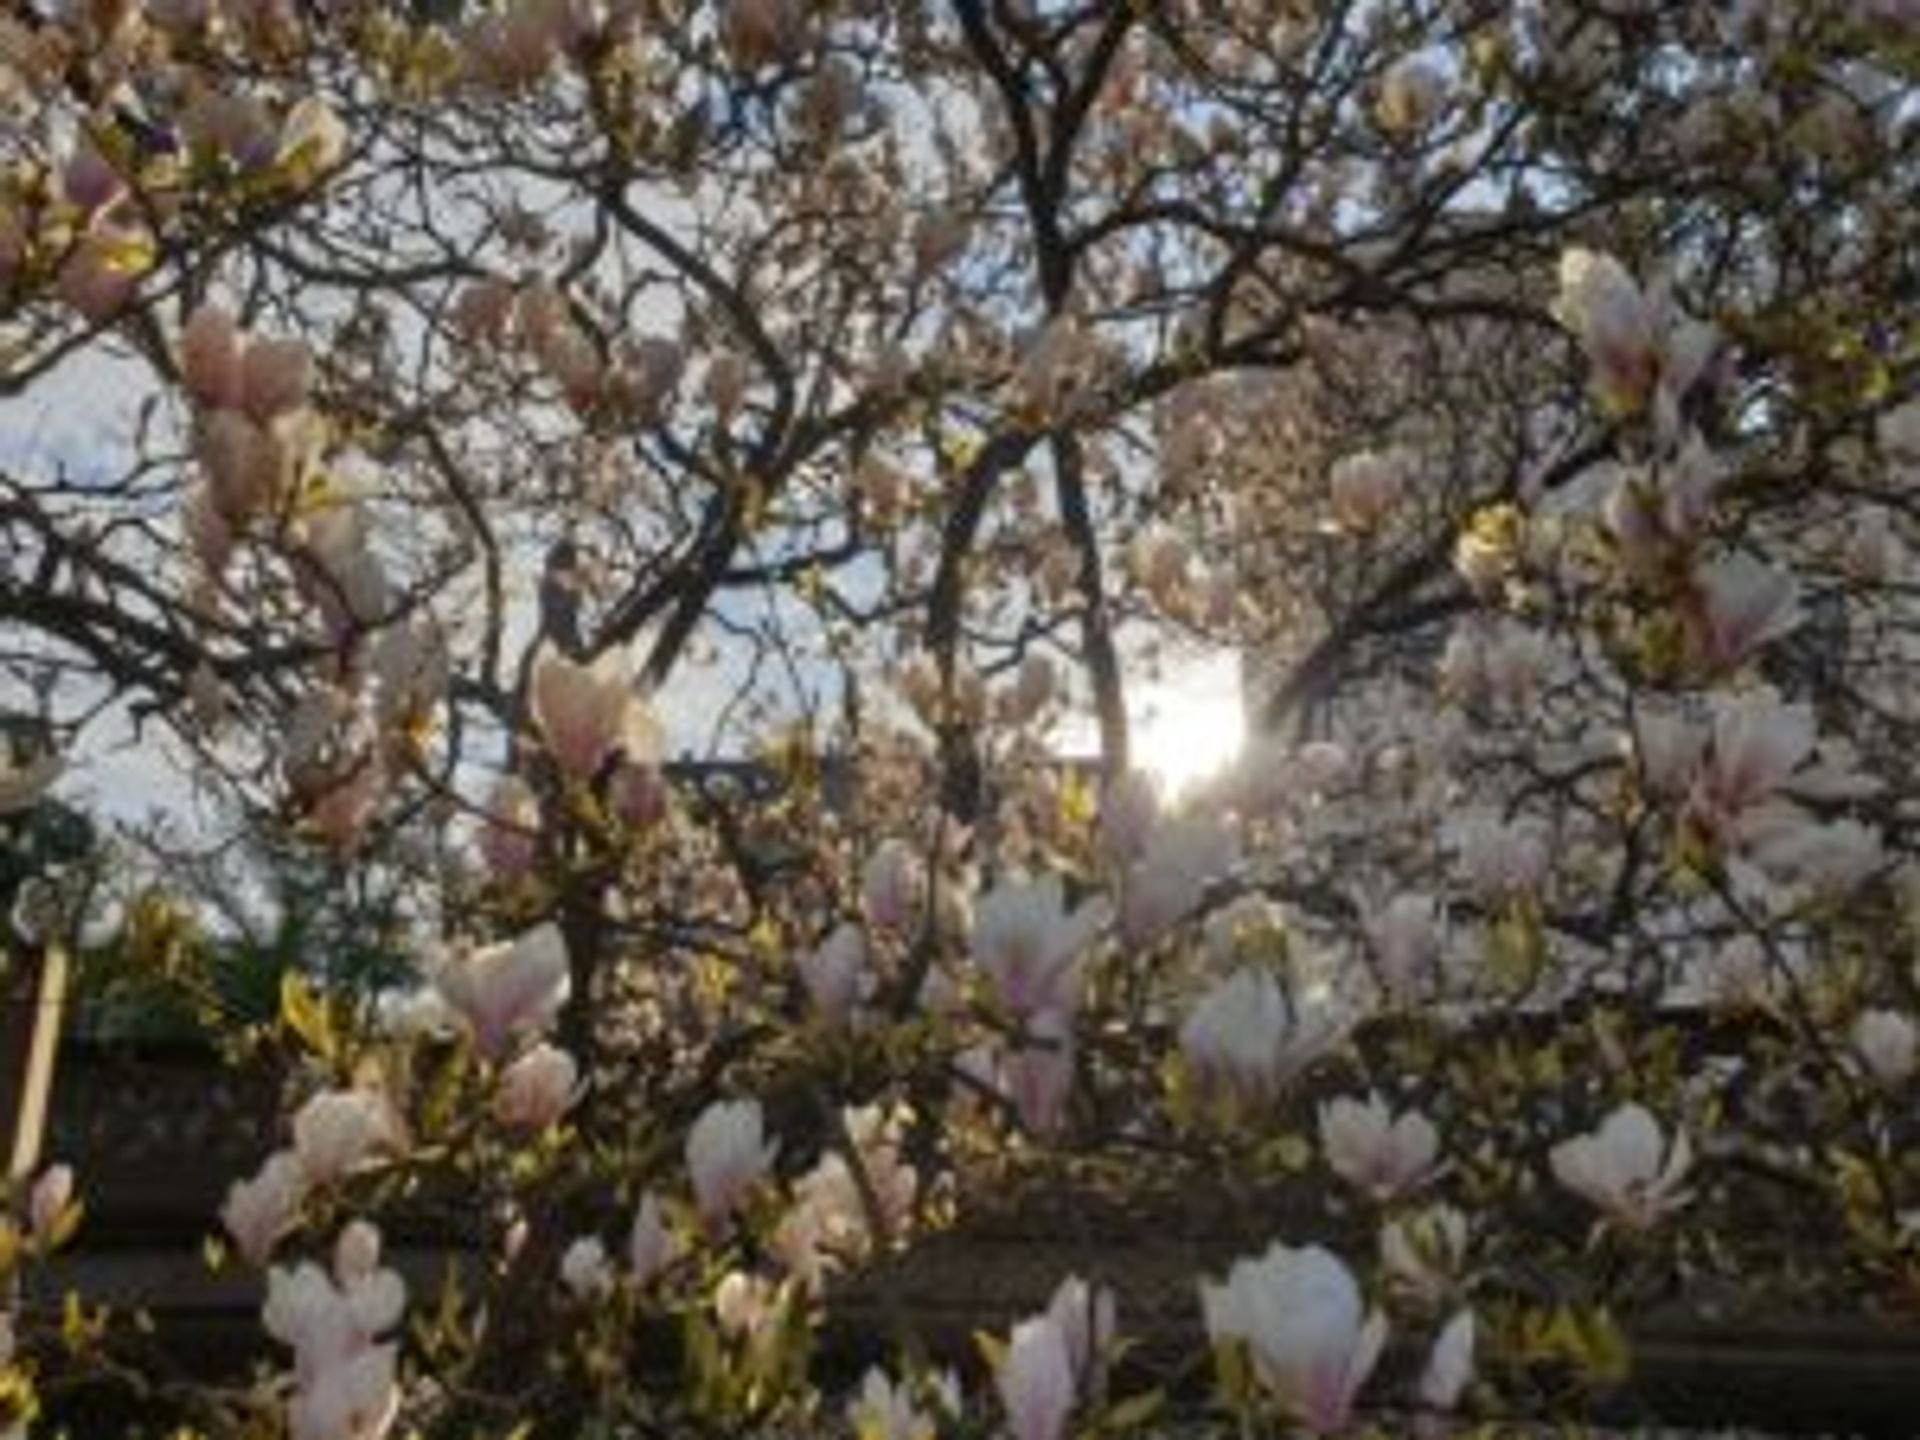 Magnolia flowers blooming on a tree.